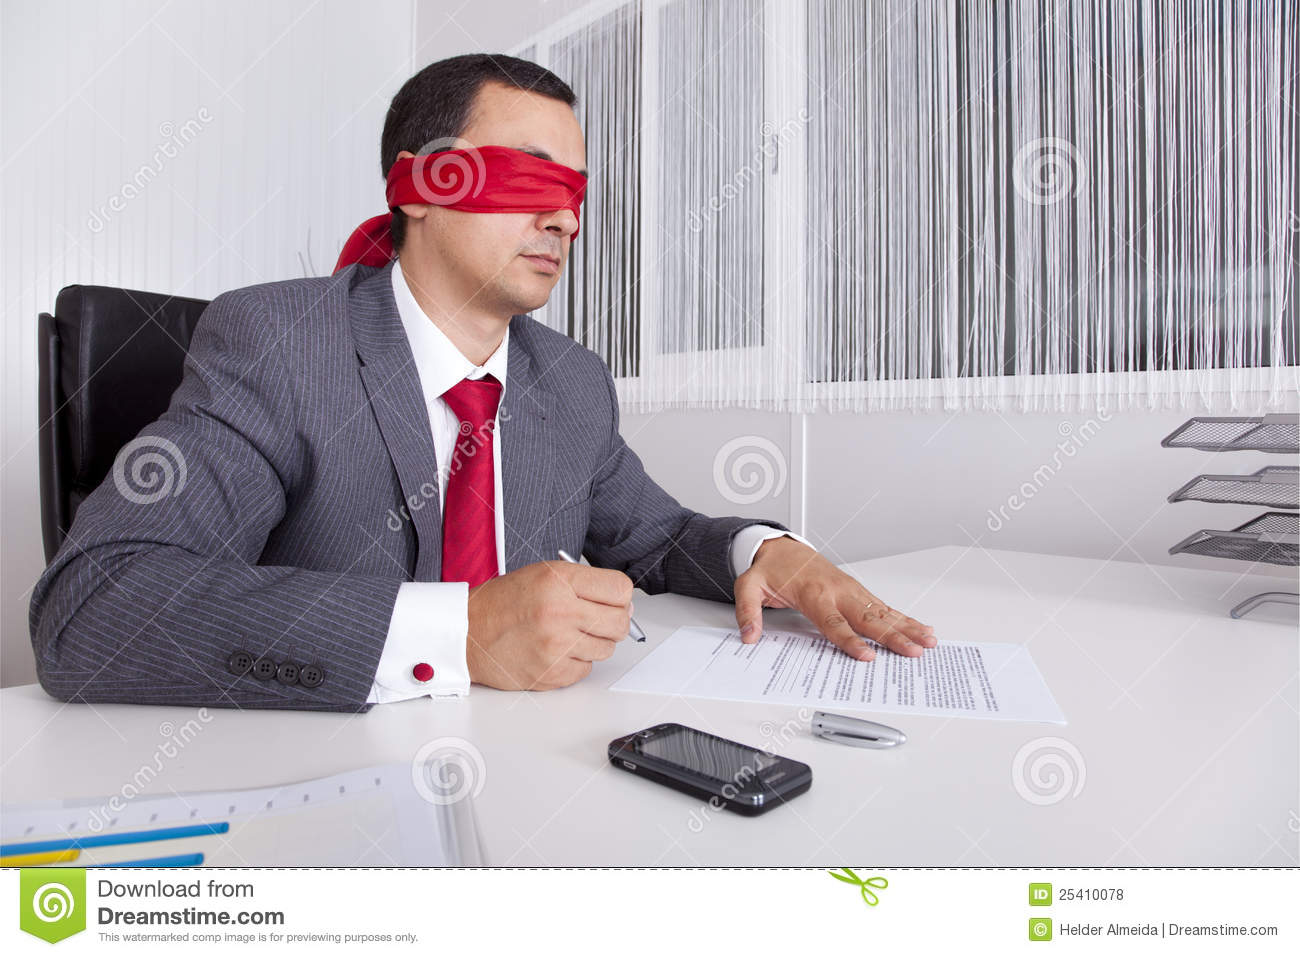 Blindfold επιχειρηματίας η εργασία lap-top του